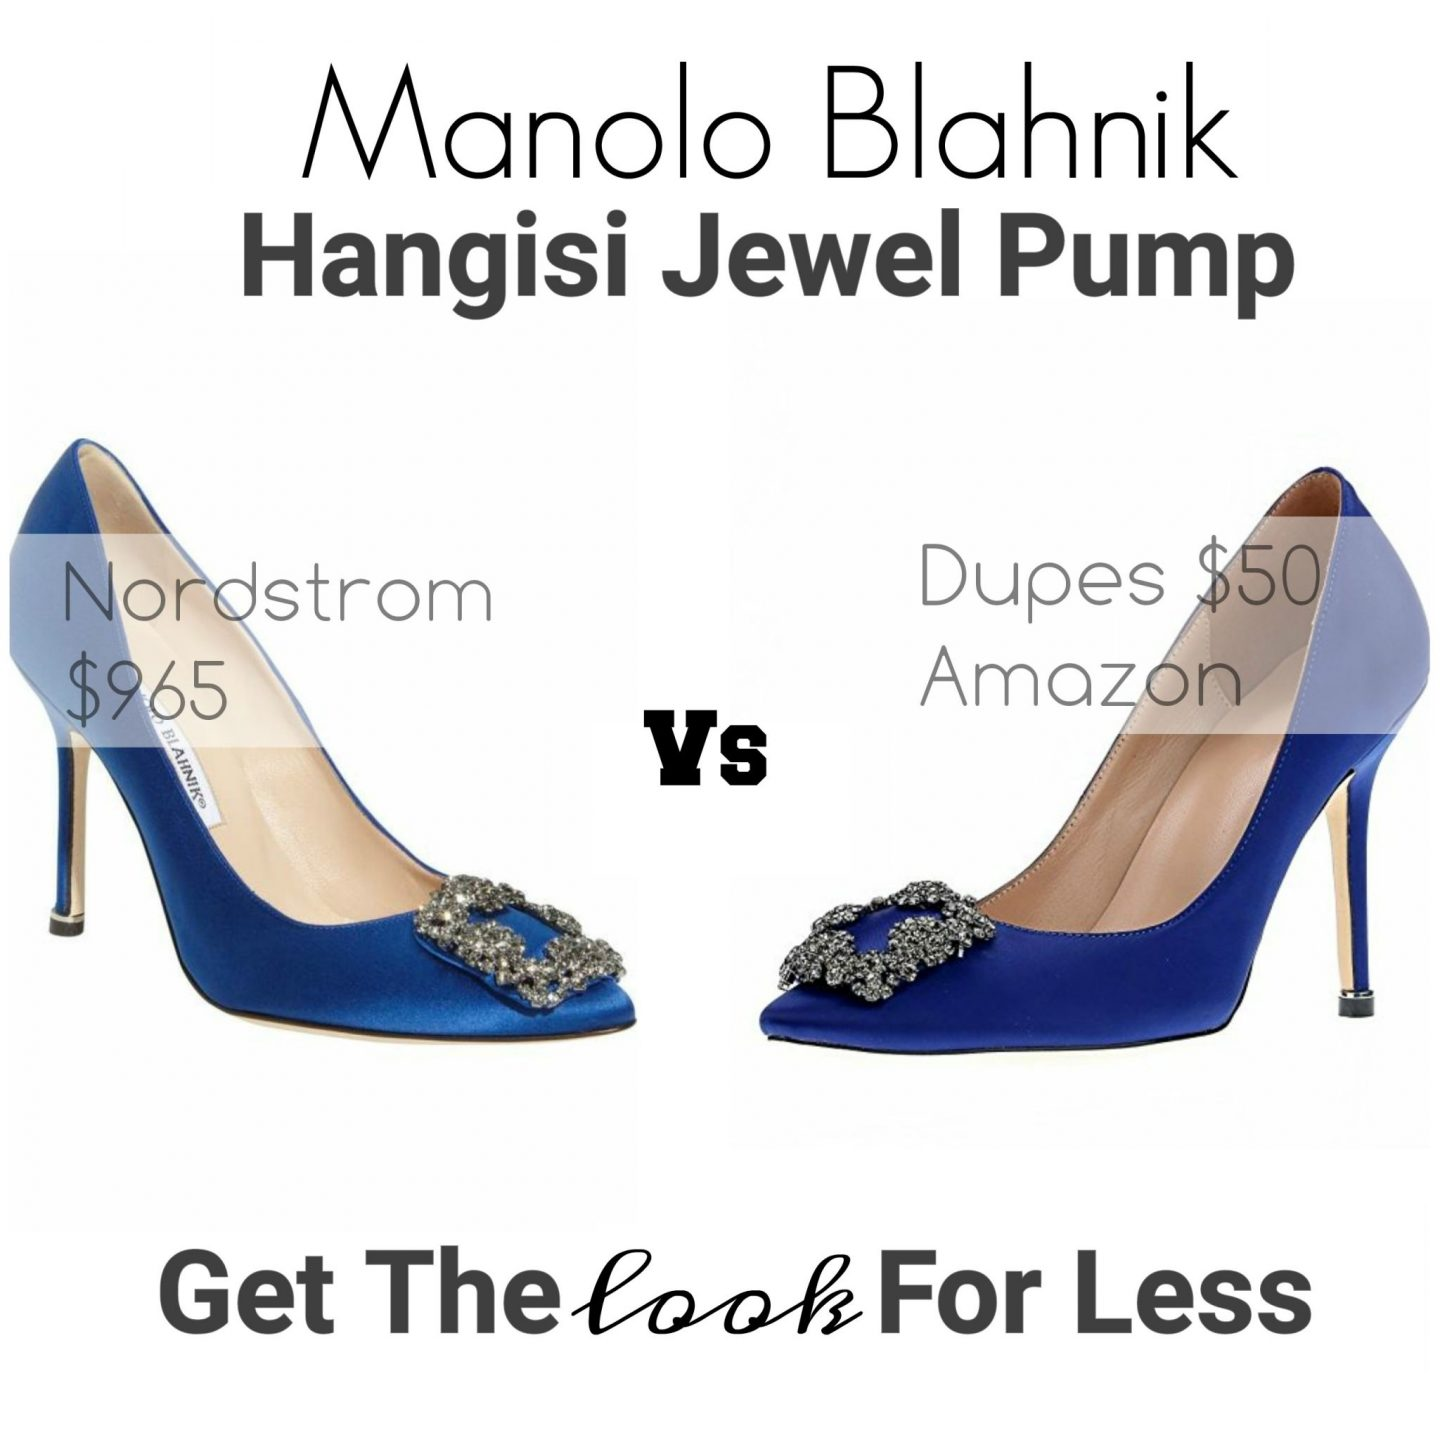 Get The Look For Less : Manolo Blahnik Hangisi